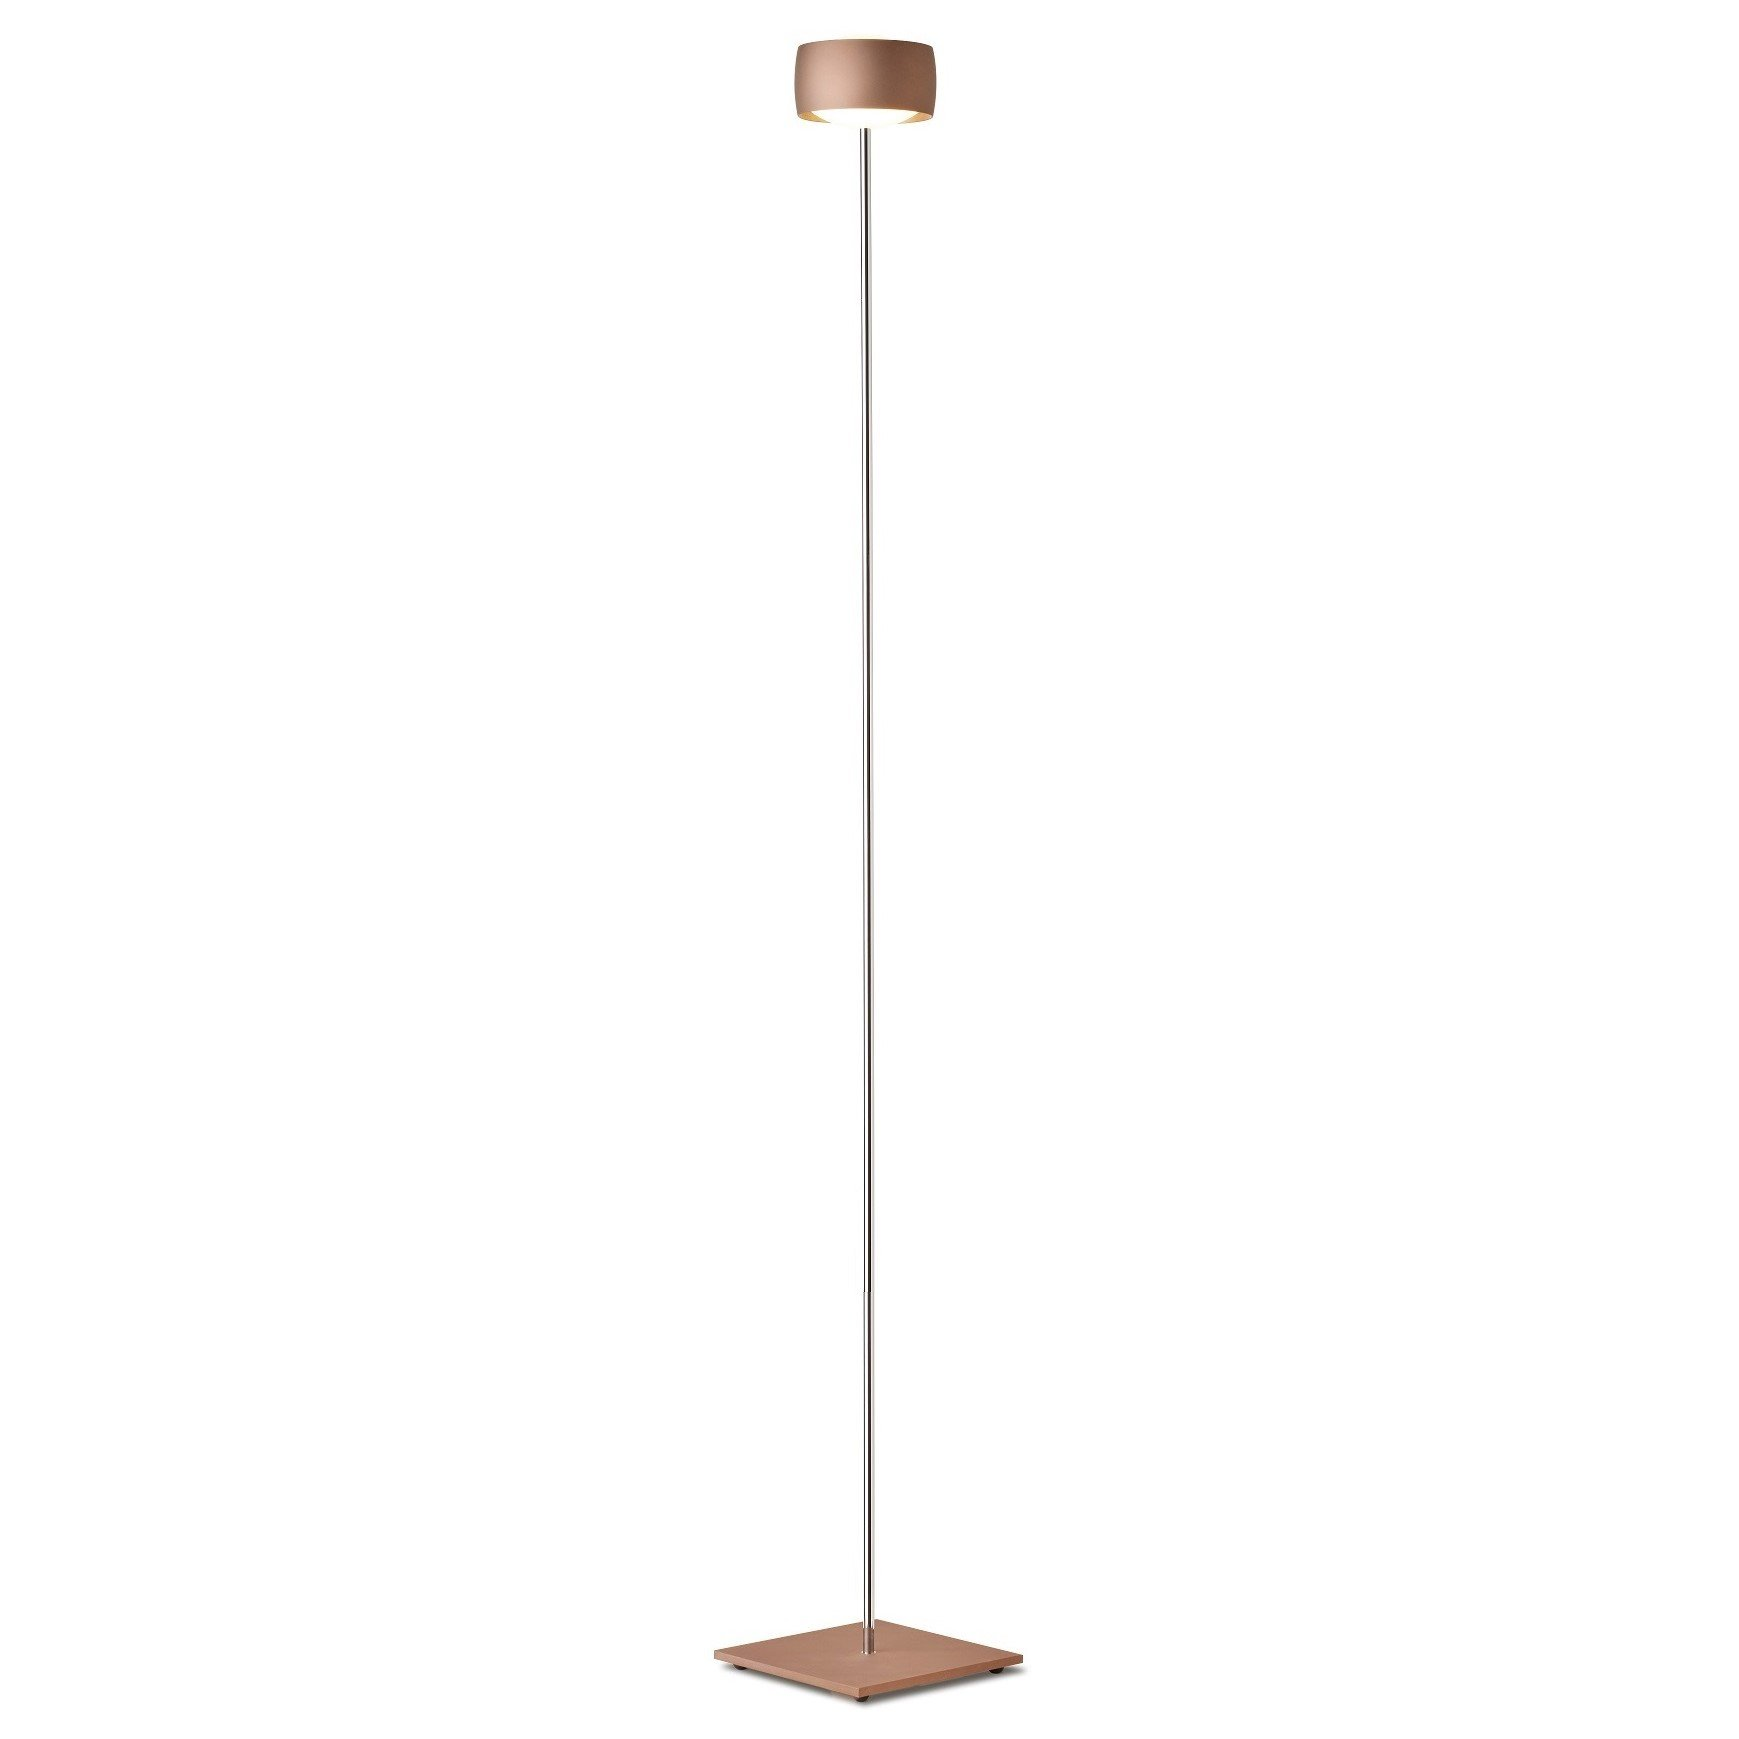 Vloerlamp Oligo Grace Satin Copper